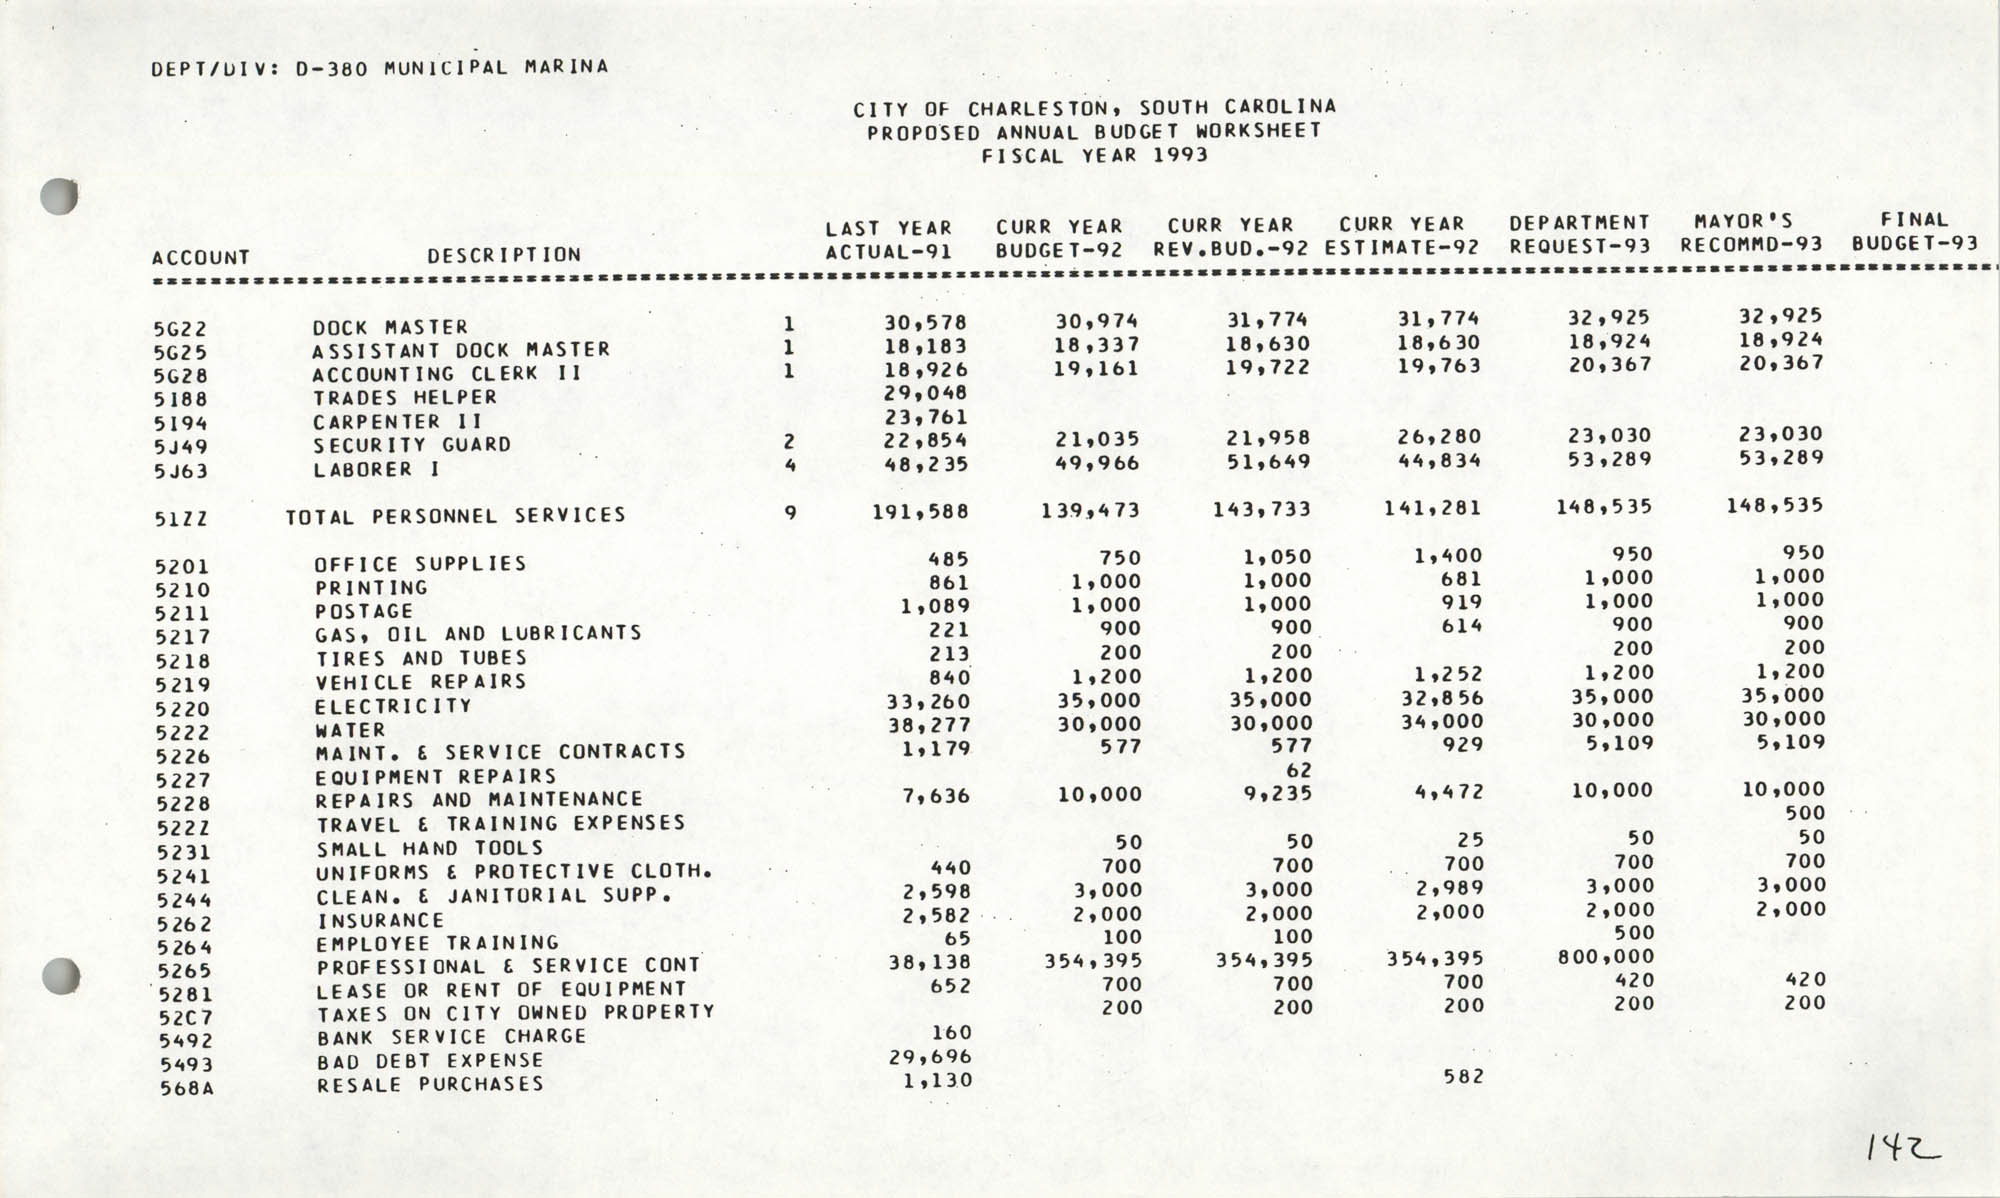 The City Council of Charleston, South Carolina, 1993 Budget, Page 142